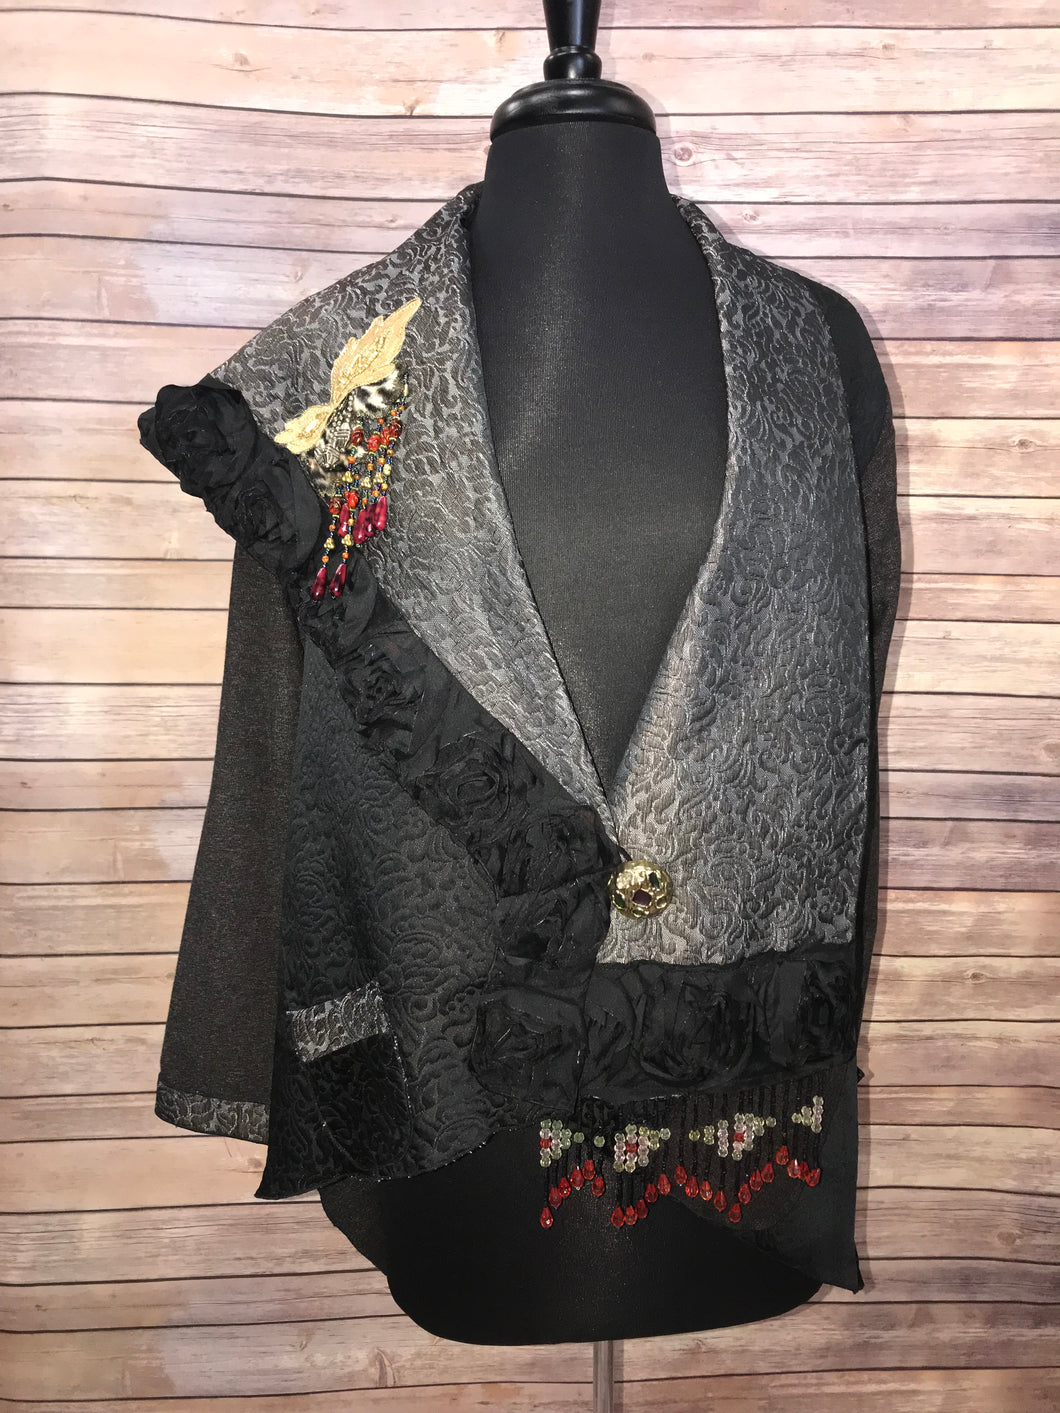 Lee Anderson Bead With Me Jacket